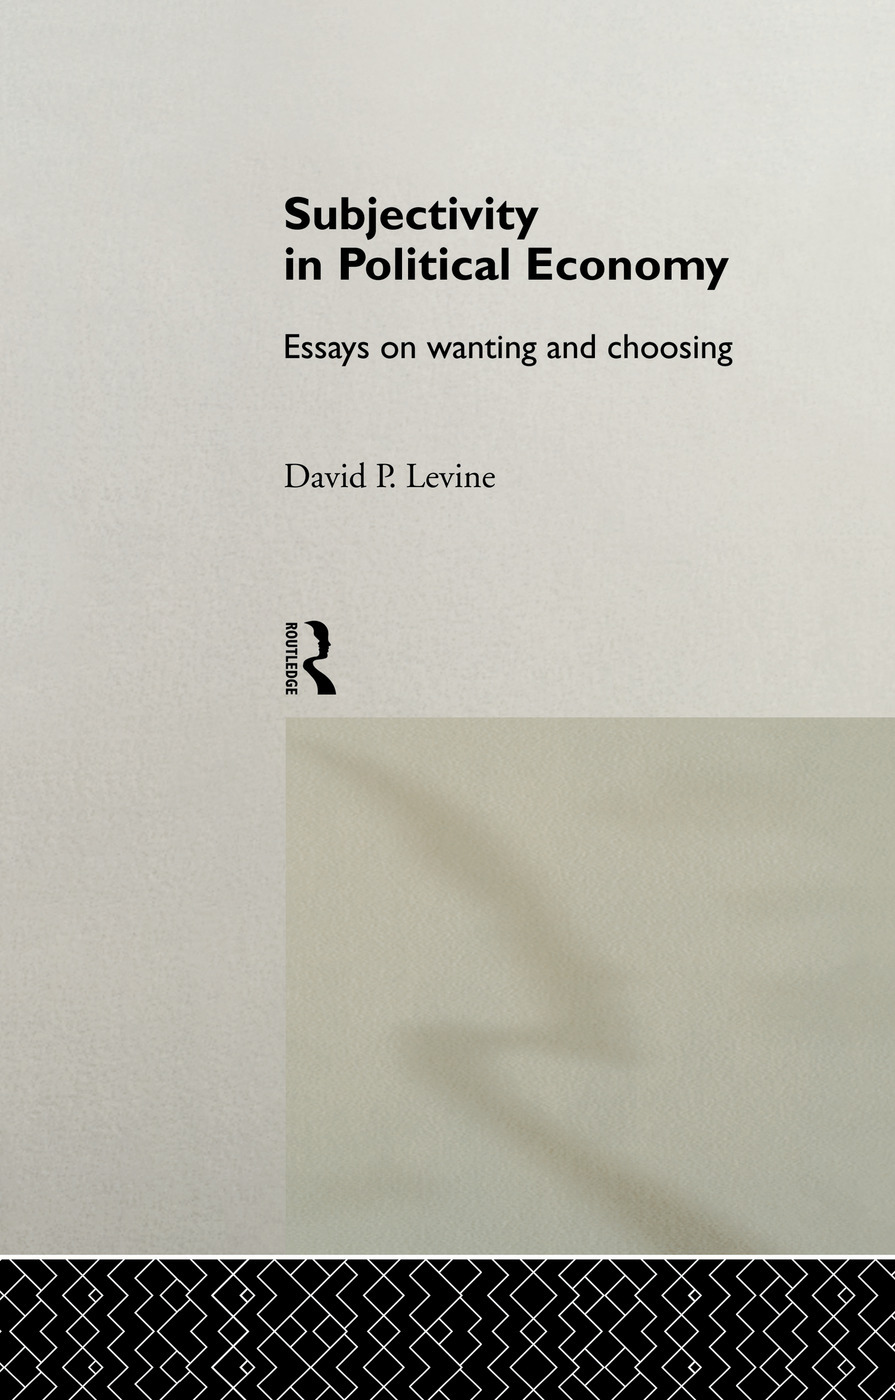 Subjectivity in political economy essays on wanting and choosing best dissertation proposal editor service au